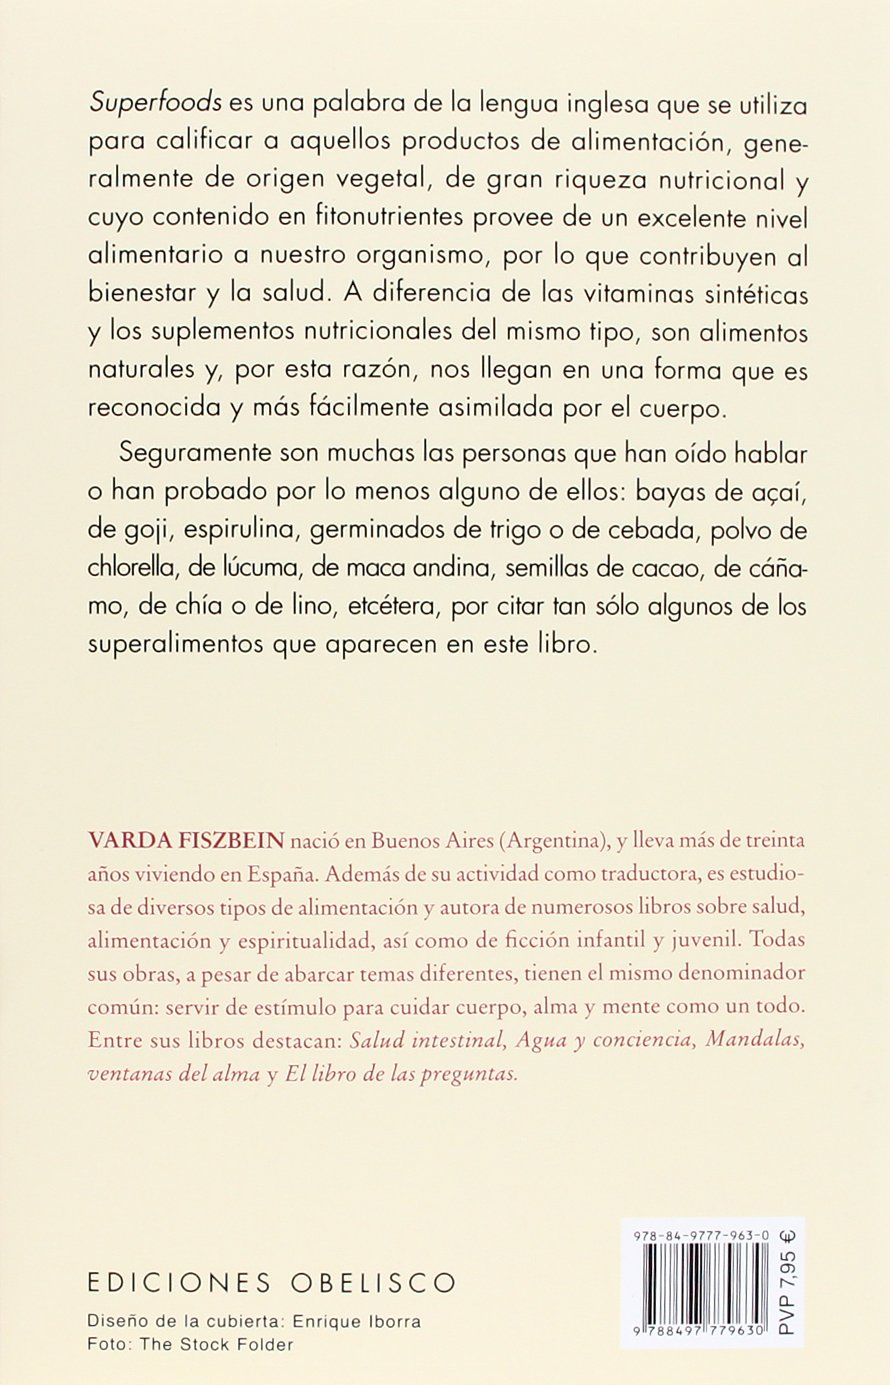 Superalimentos (Spanish Edition): Varda Fiszbein: 9788497779630: Amazon.com: Books